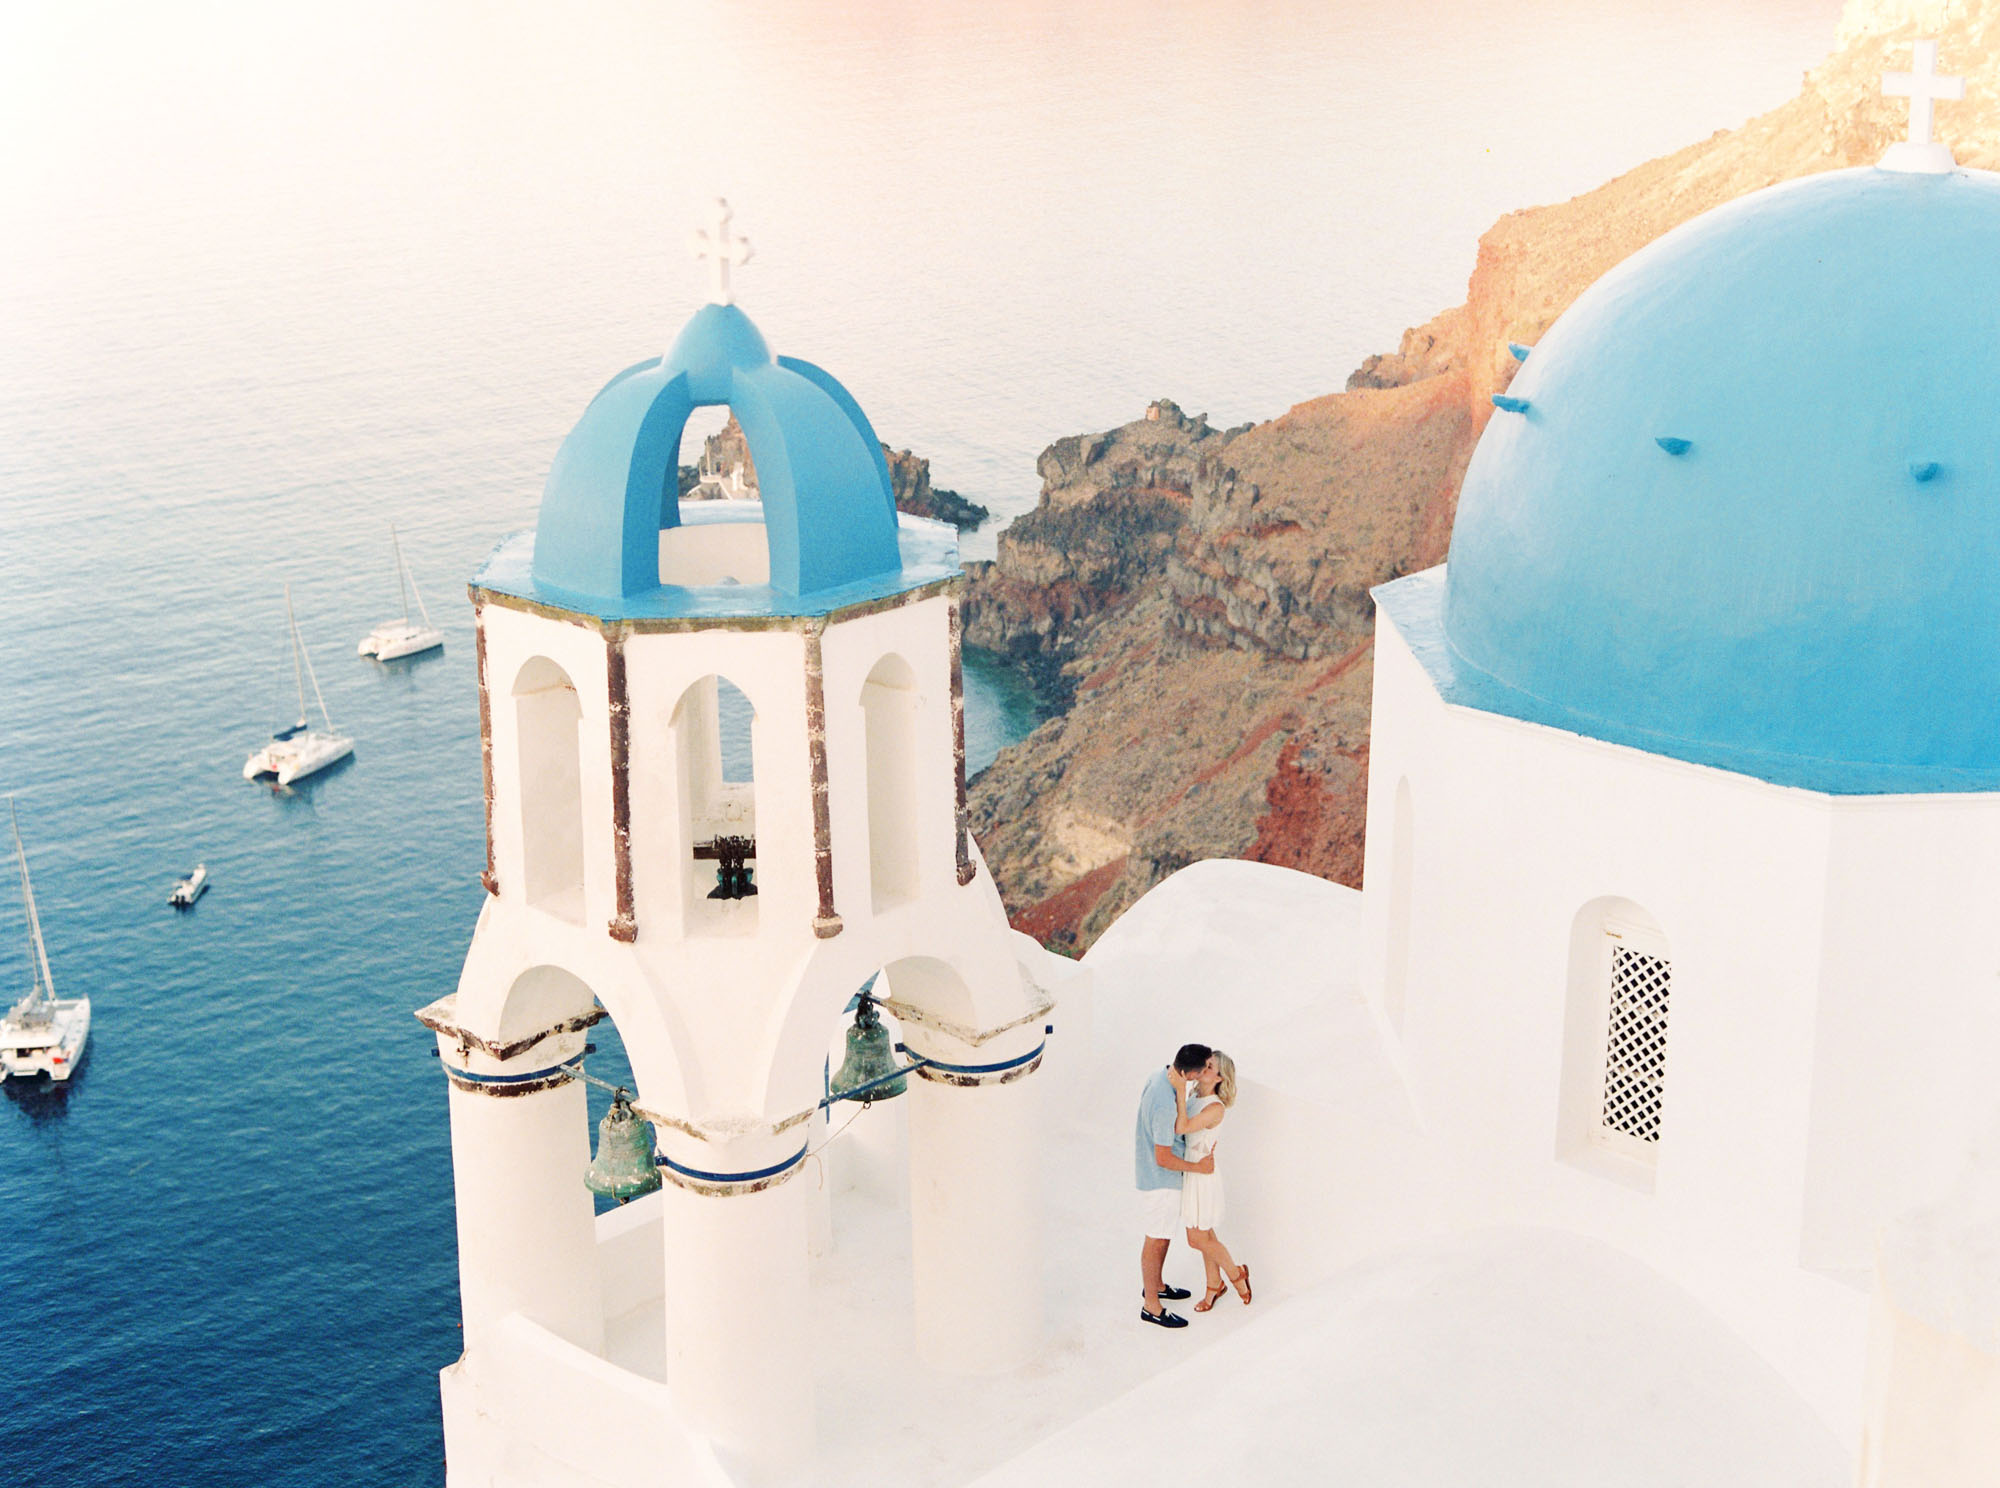 Kissing on the rooftops of Oia in Santorini, Greece